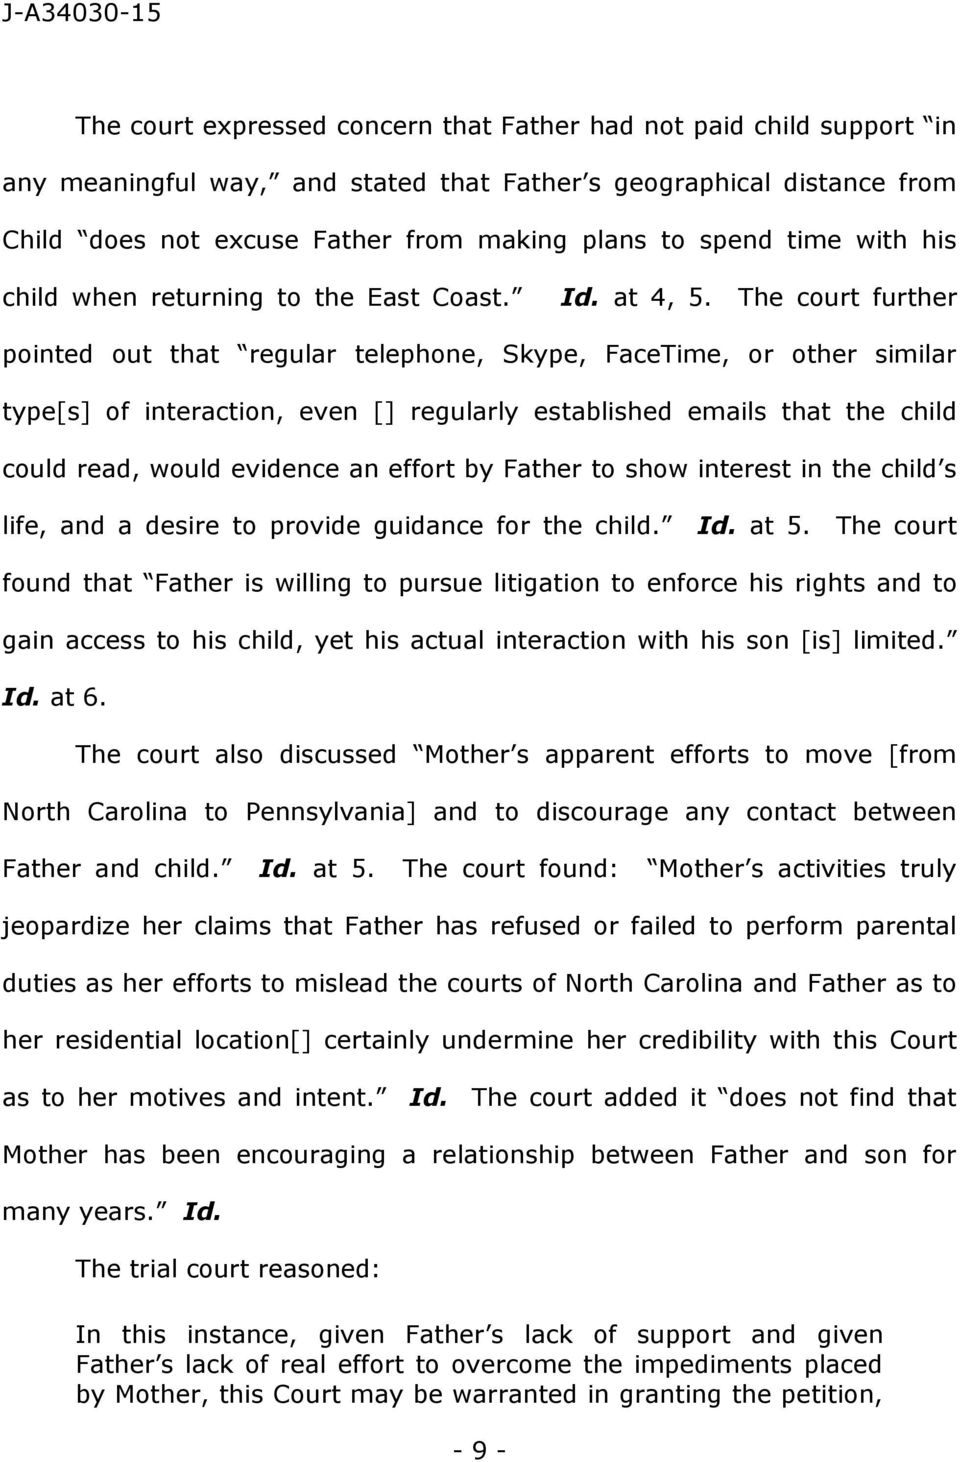 The court further pointed out that regular telephone, Skype, FaceTime, or other similar type[s] of interaction, even [] regularly established emails that the child could read, would evidence an